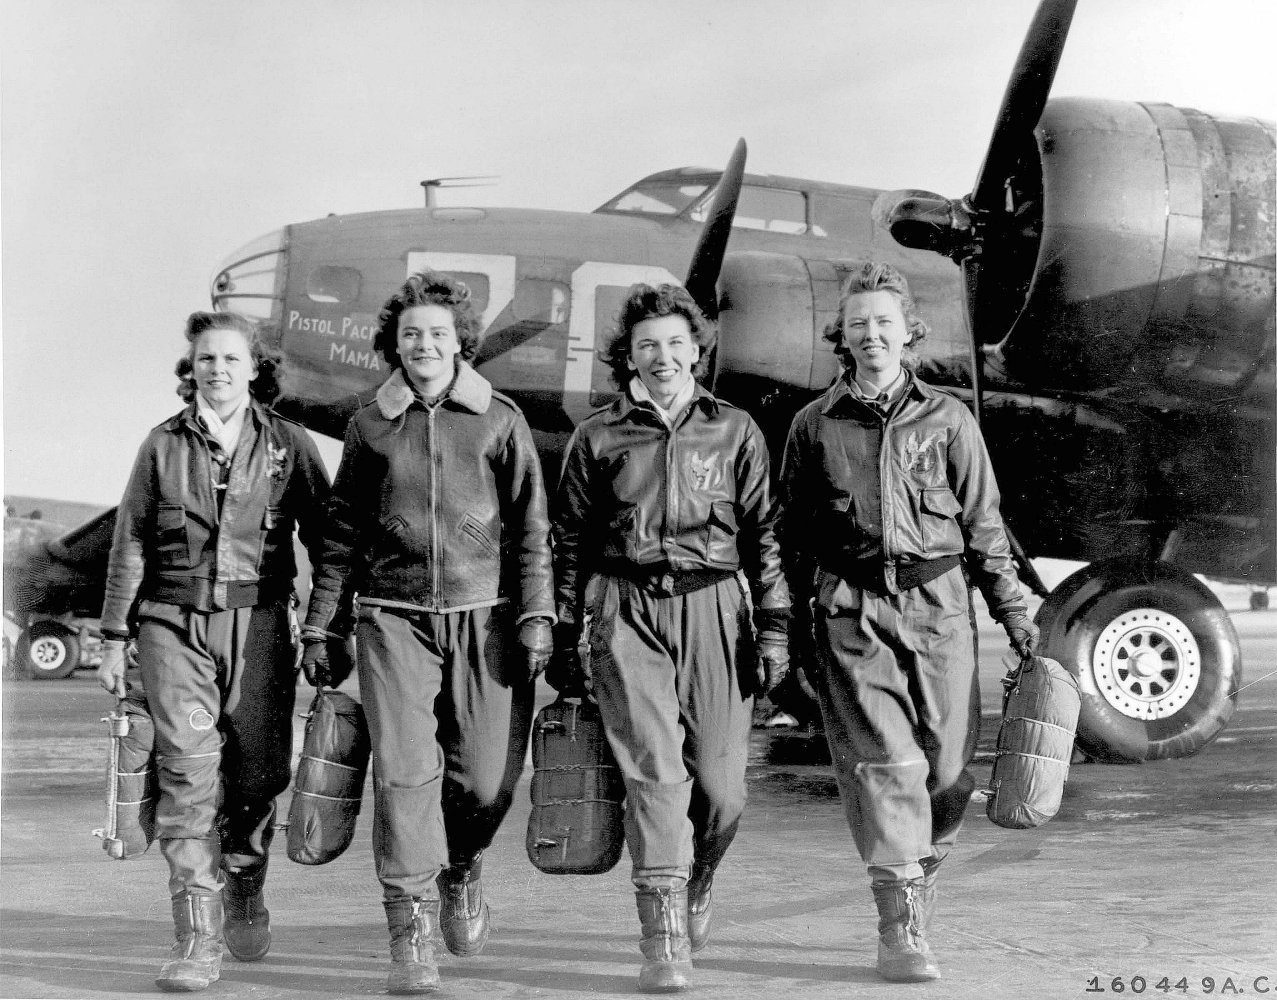 Group of Women Airforce Service Pilots and B-17 Flying Fortress Google image from http://upload.wikimedia.org/wikipedia/commons/a/aa/Group_of_Women_Airforce_Service_Pilots_and_B-17_Flying_Fortress.jpg